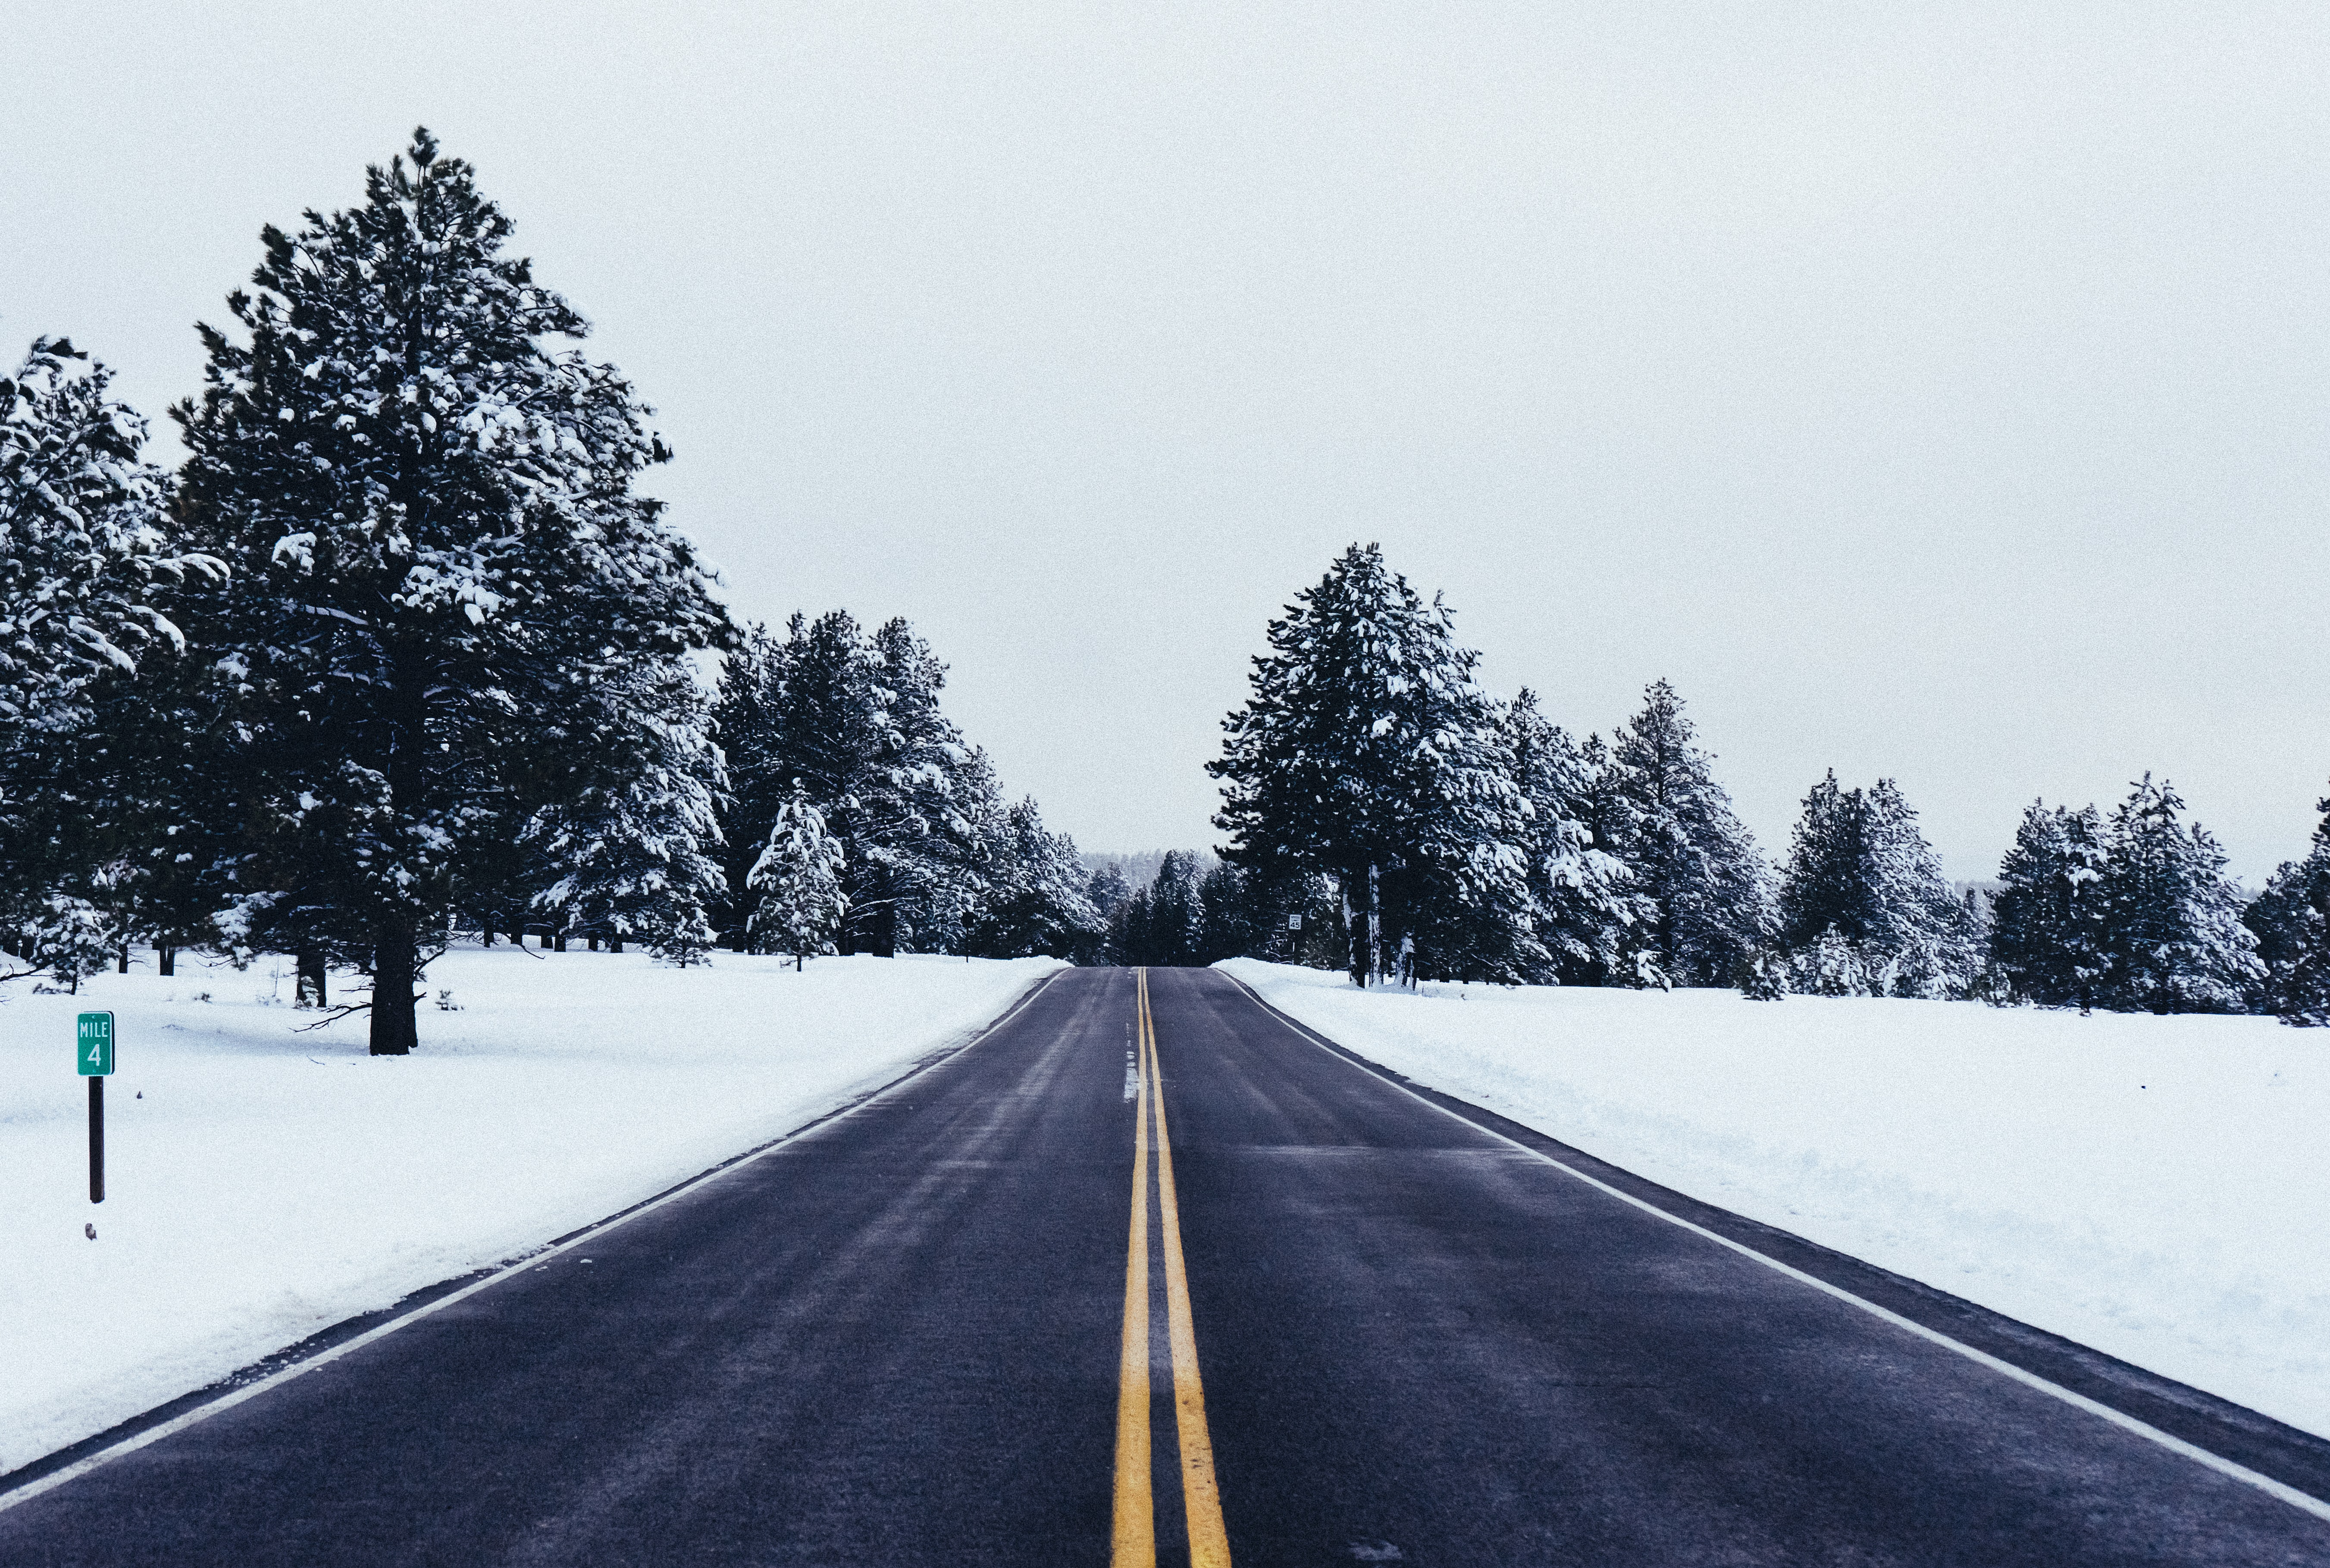 empty road near trees covered in snow at daytime